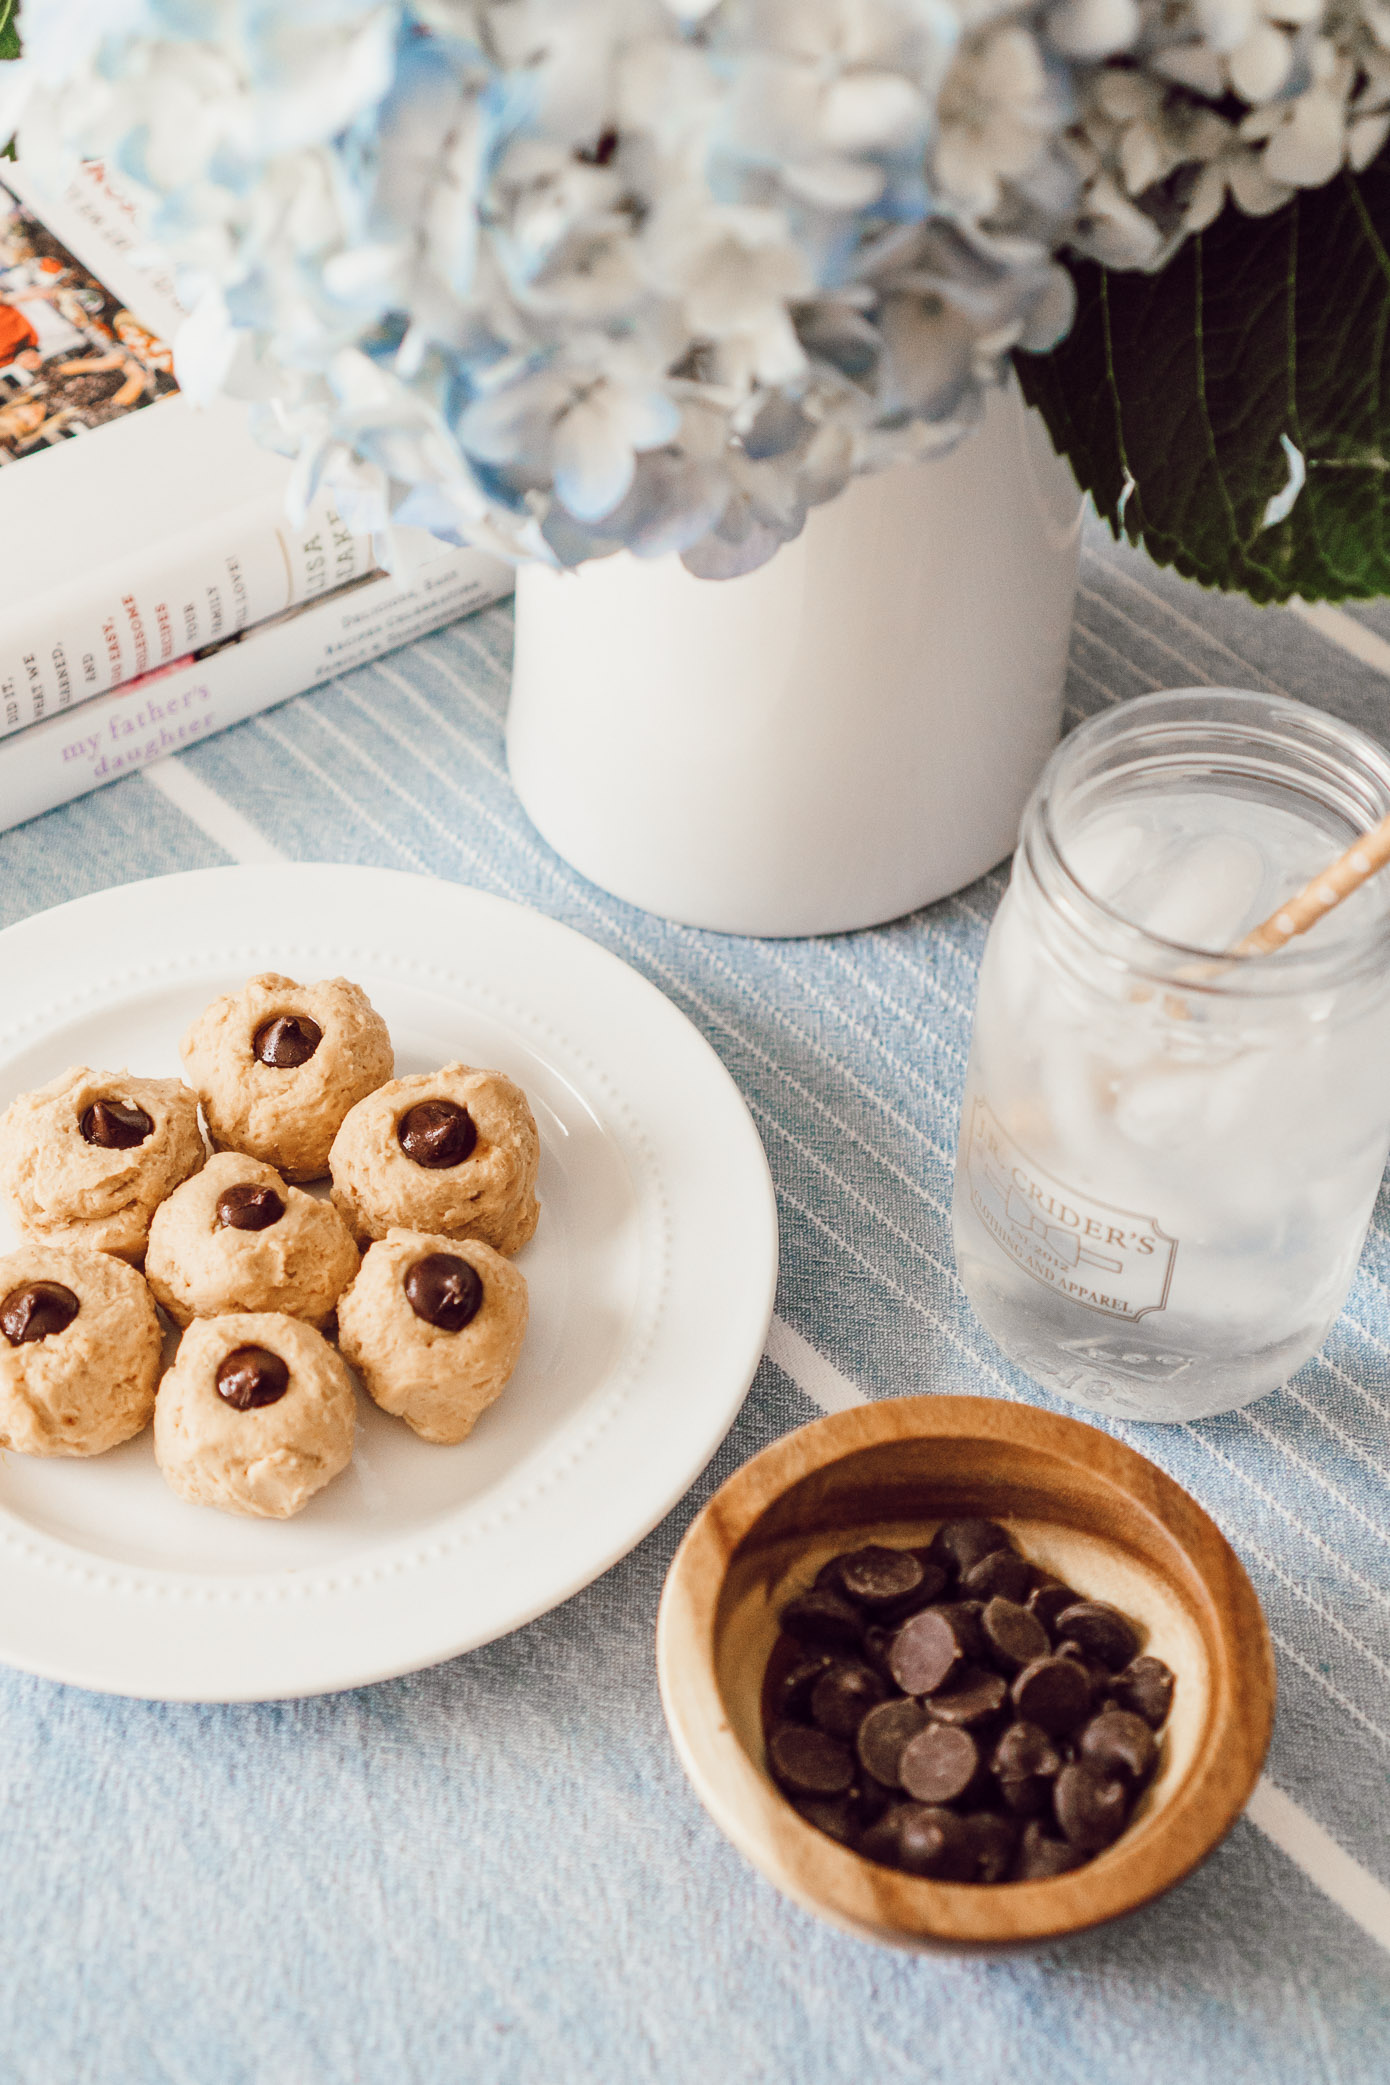 FWTFL Approved Low Carb Snacks & Regular Macro Day Snacks featured on Louella Reese Life & Style Blog | Peanut Butter Cream Cheese Fat Bombs